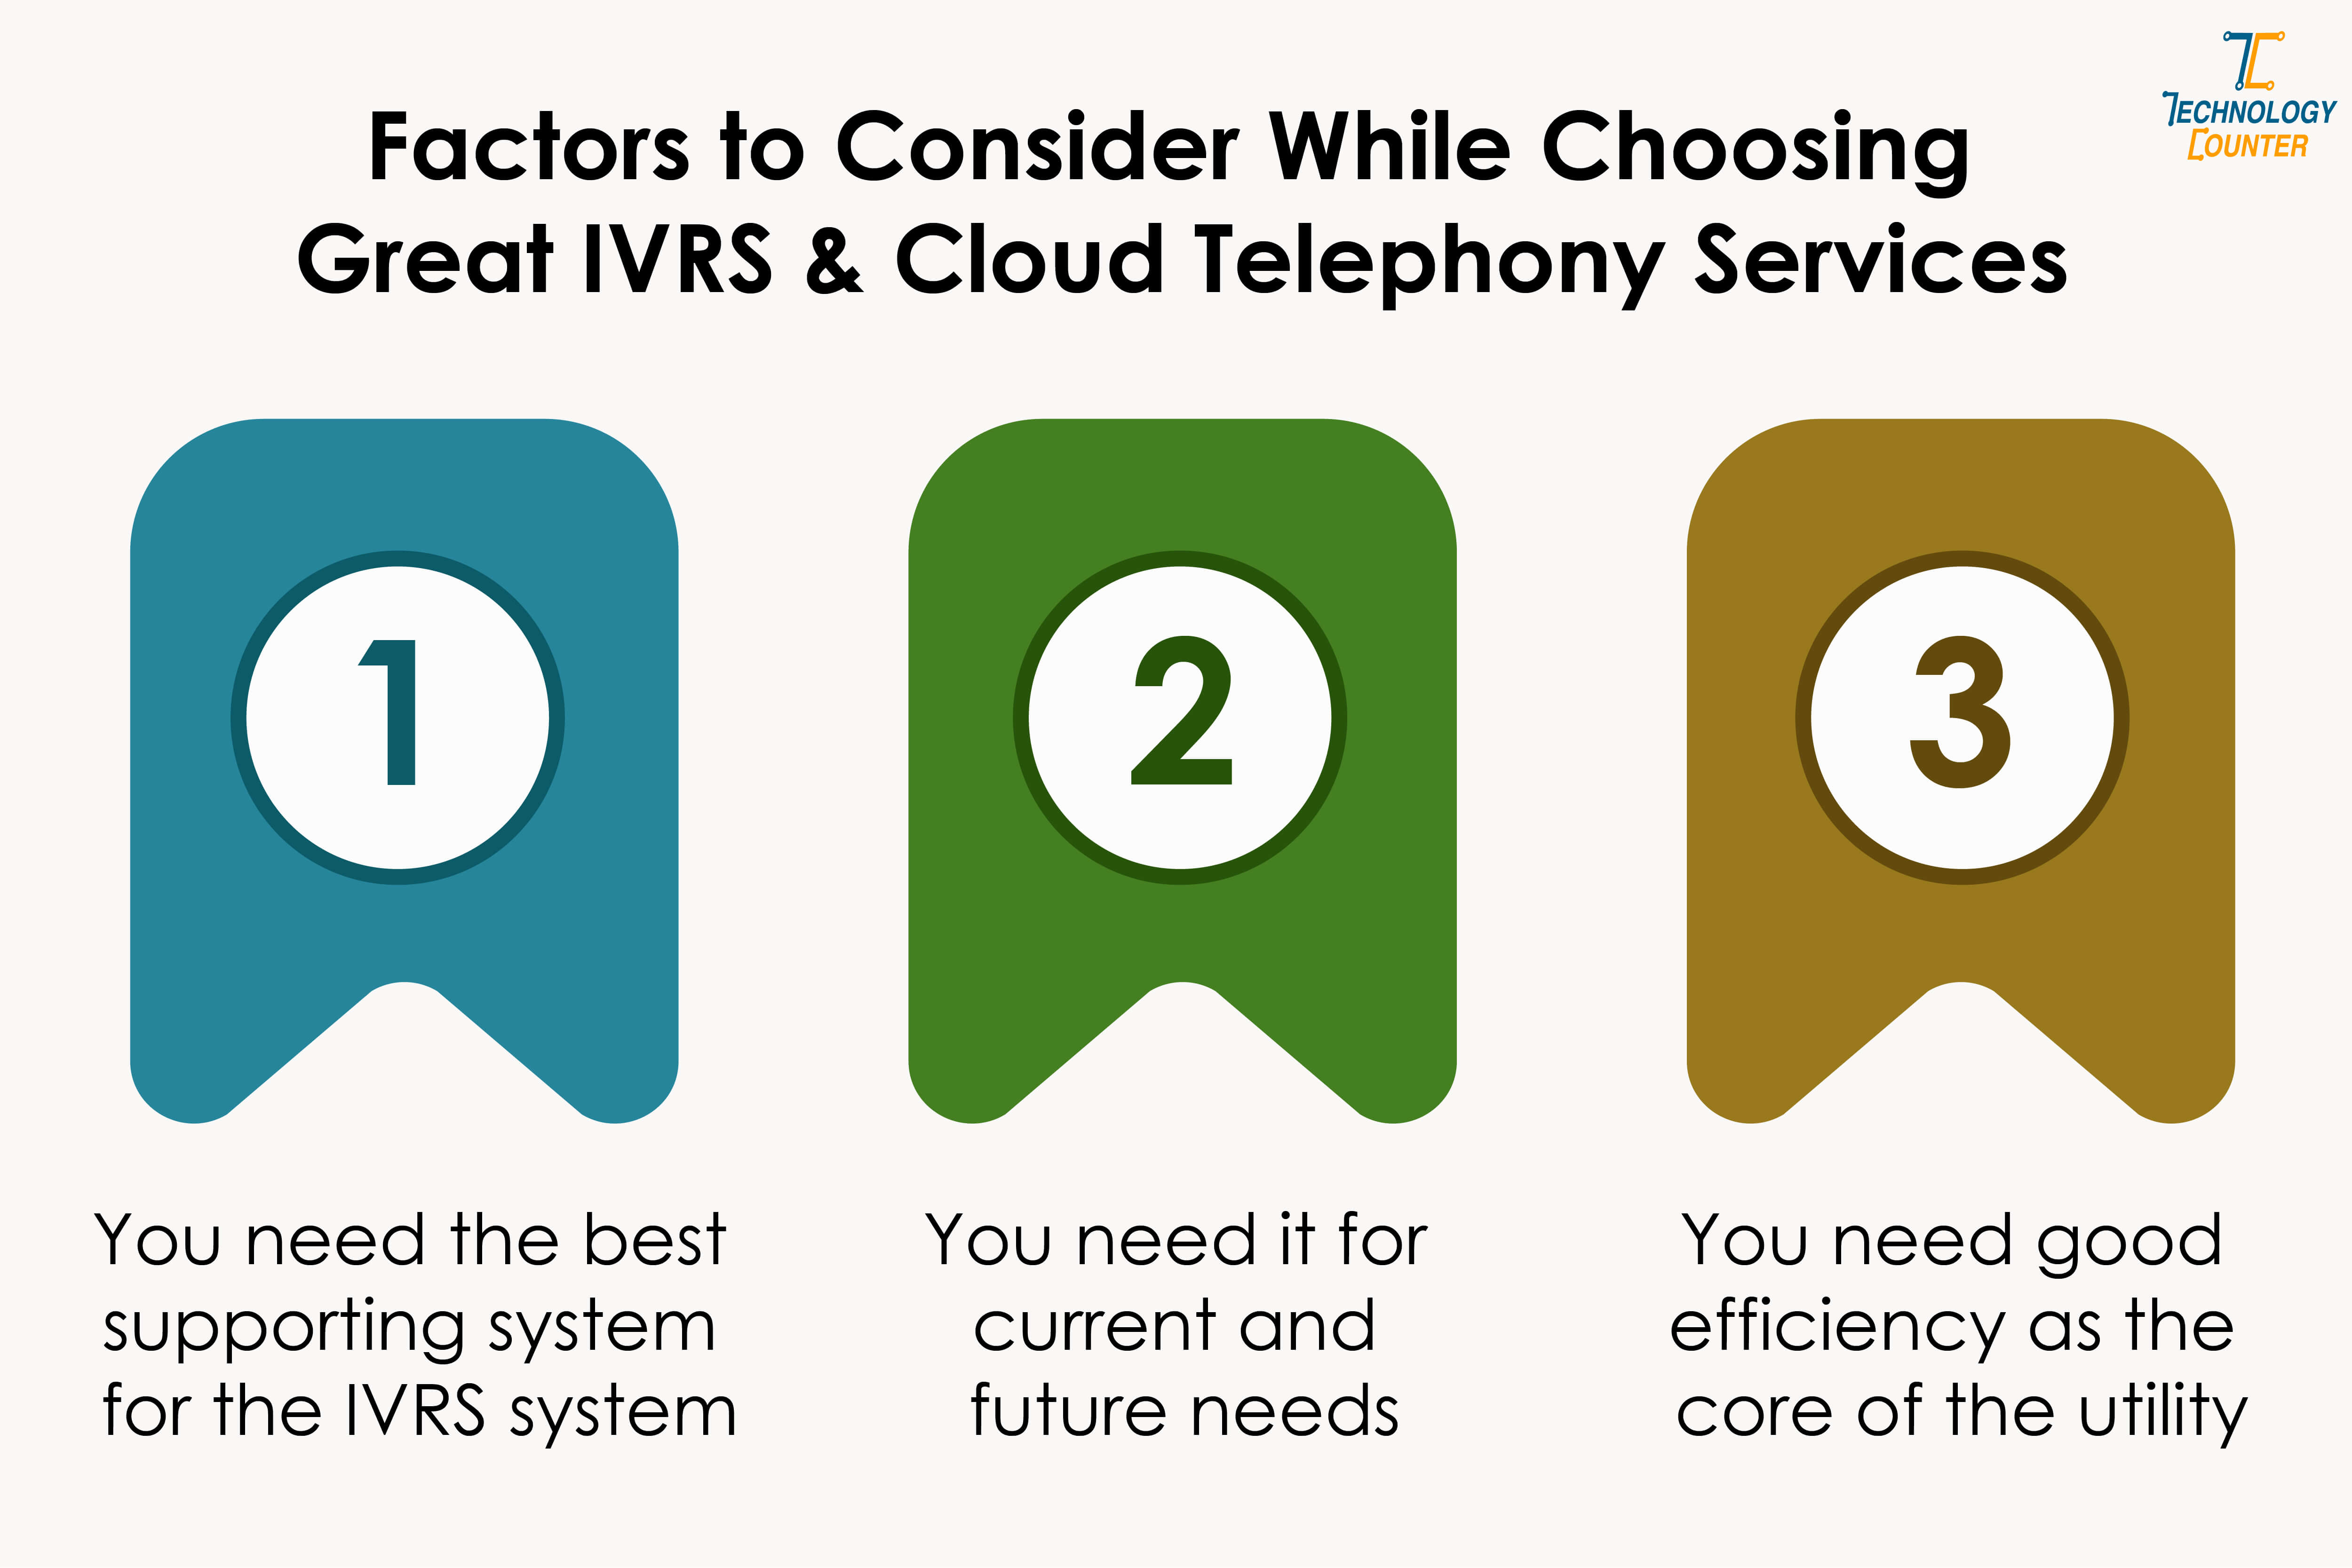 Factors to Consider While Choosing IVRS and Cloud Telephony Services